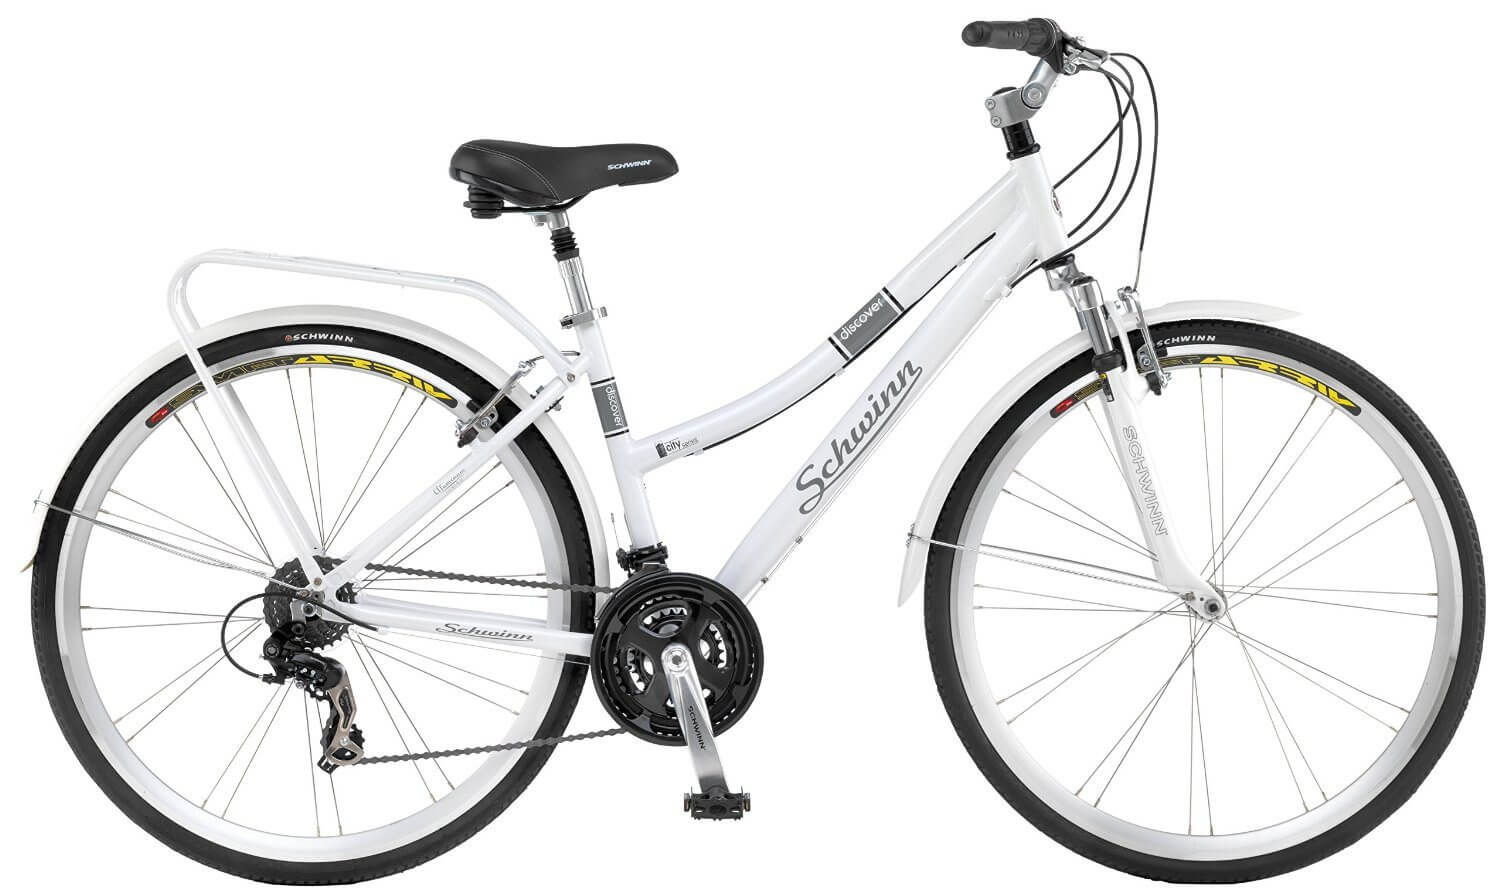 Schwinn Discover Women S Hybrid Bike 700c Wheels Review Road Adventure Your Ing Guide And Source